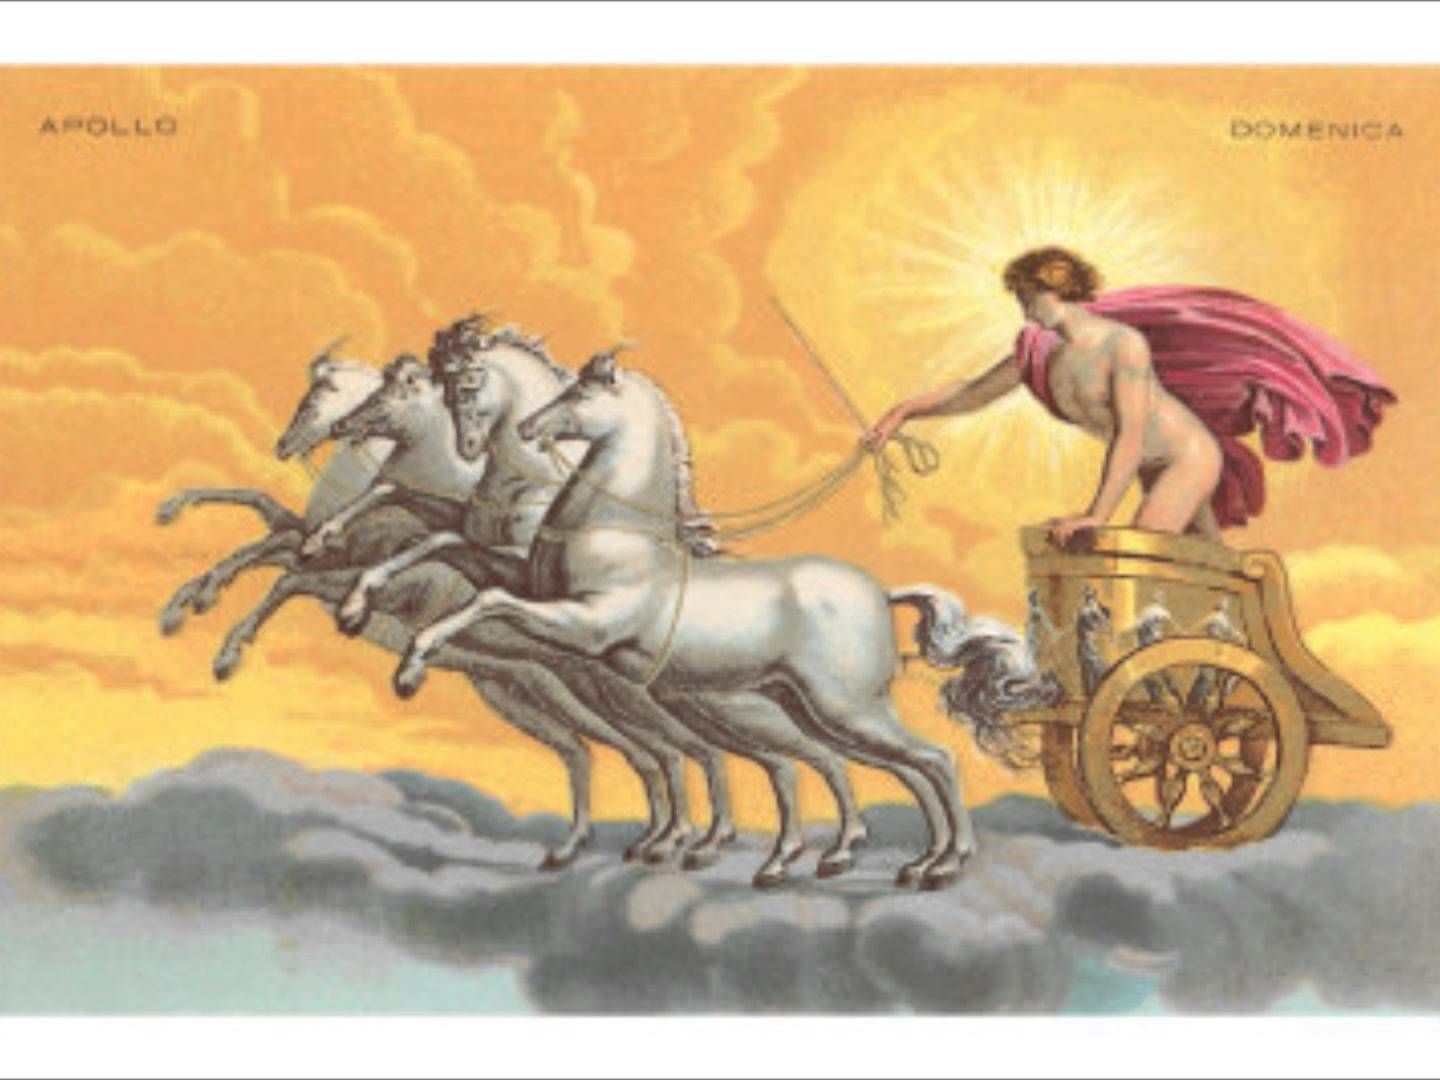 greek myths apollo with his chariot - photo #2